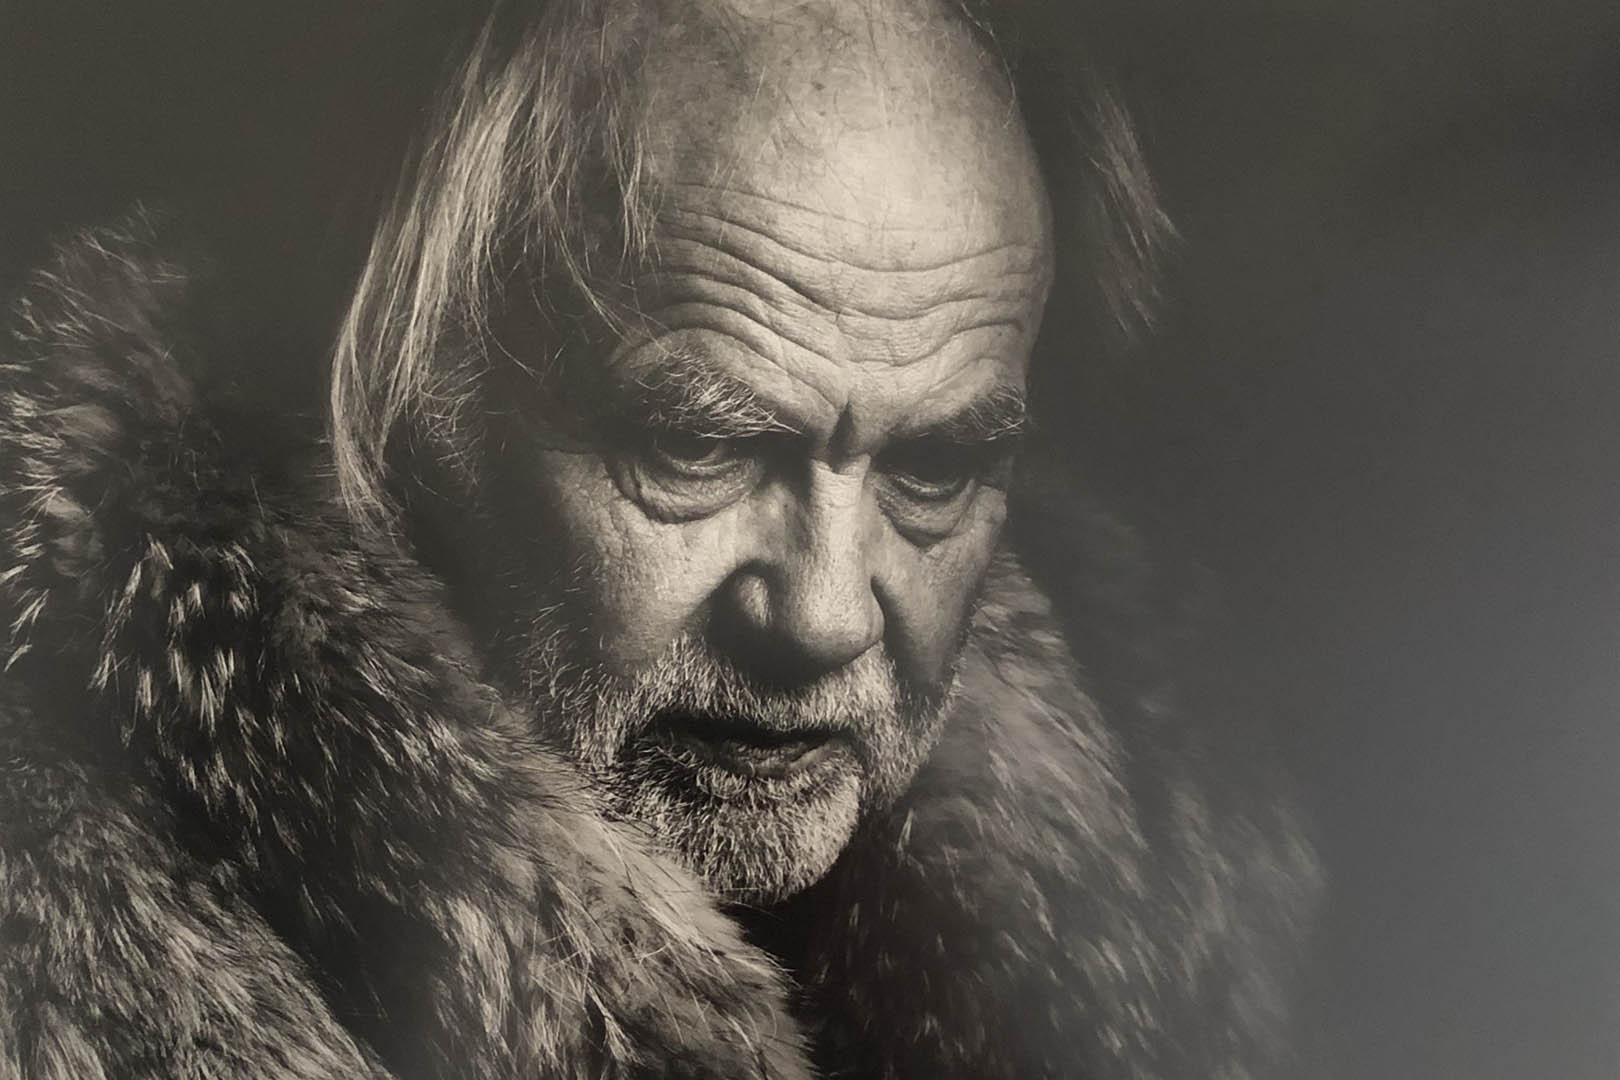 Galleri Lyshuset, The painter of light, The Norwegian painter Kåre Tveter, Photo by Morten Krogvold